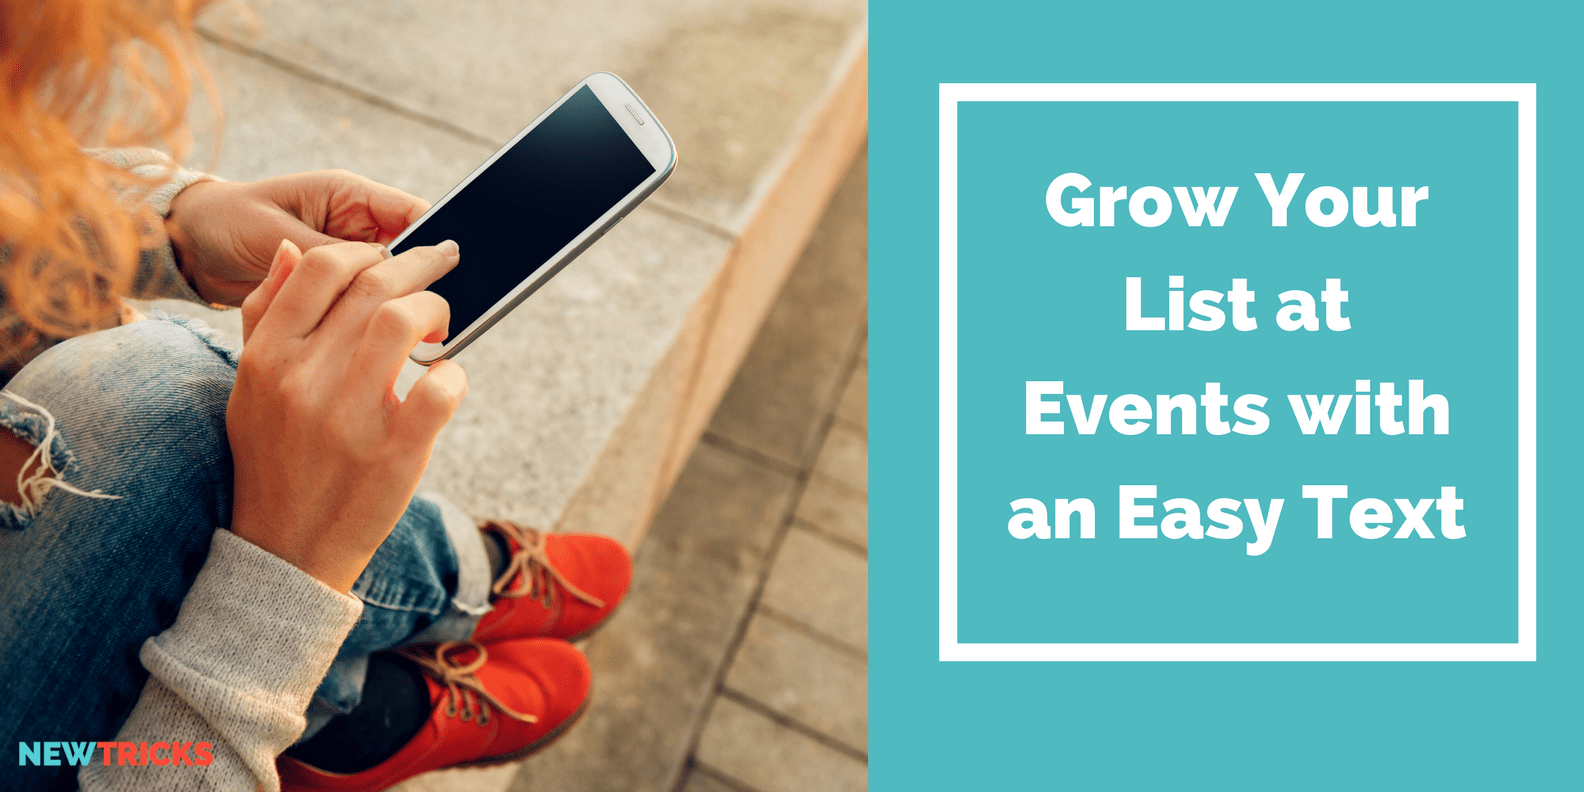 Grow Your List at Events with an easy text